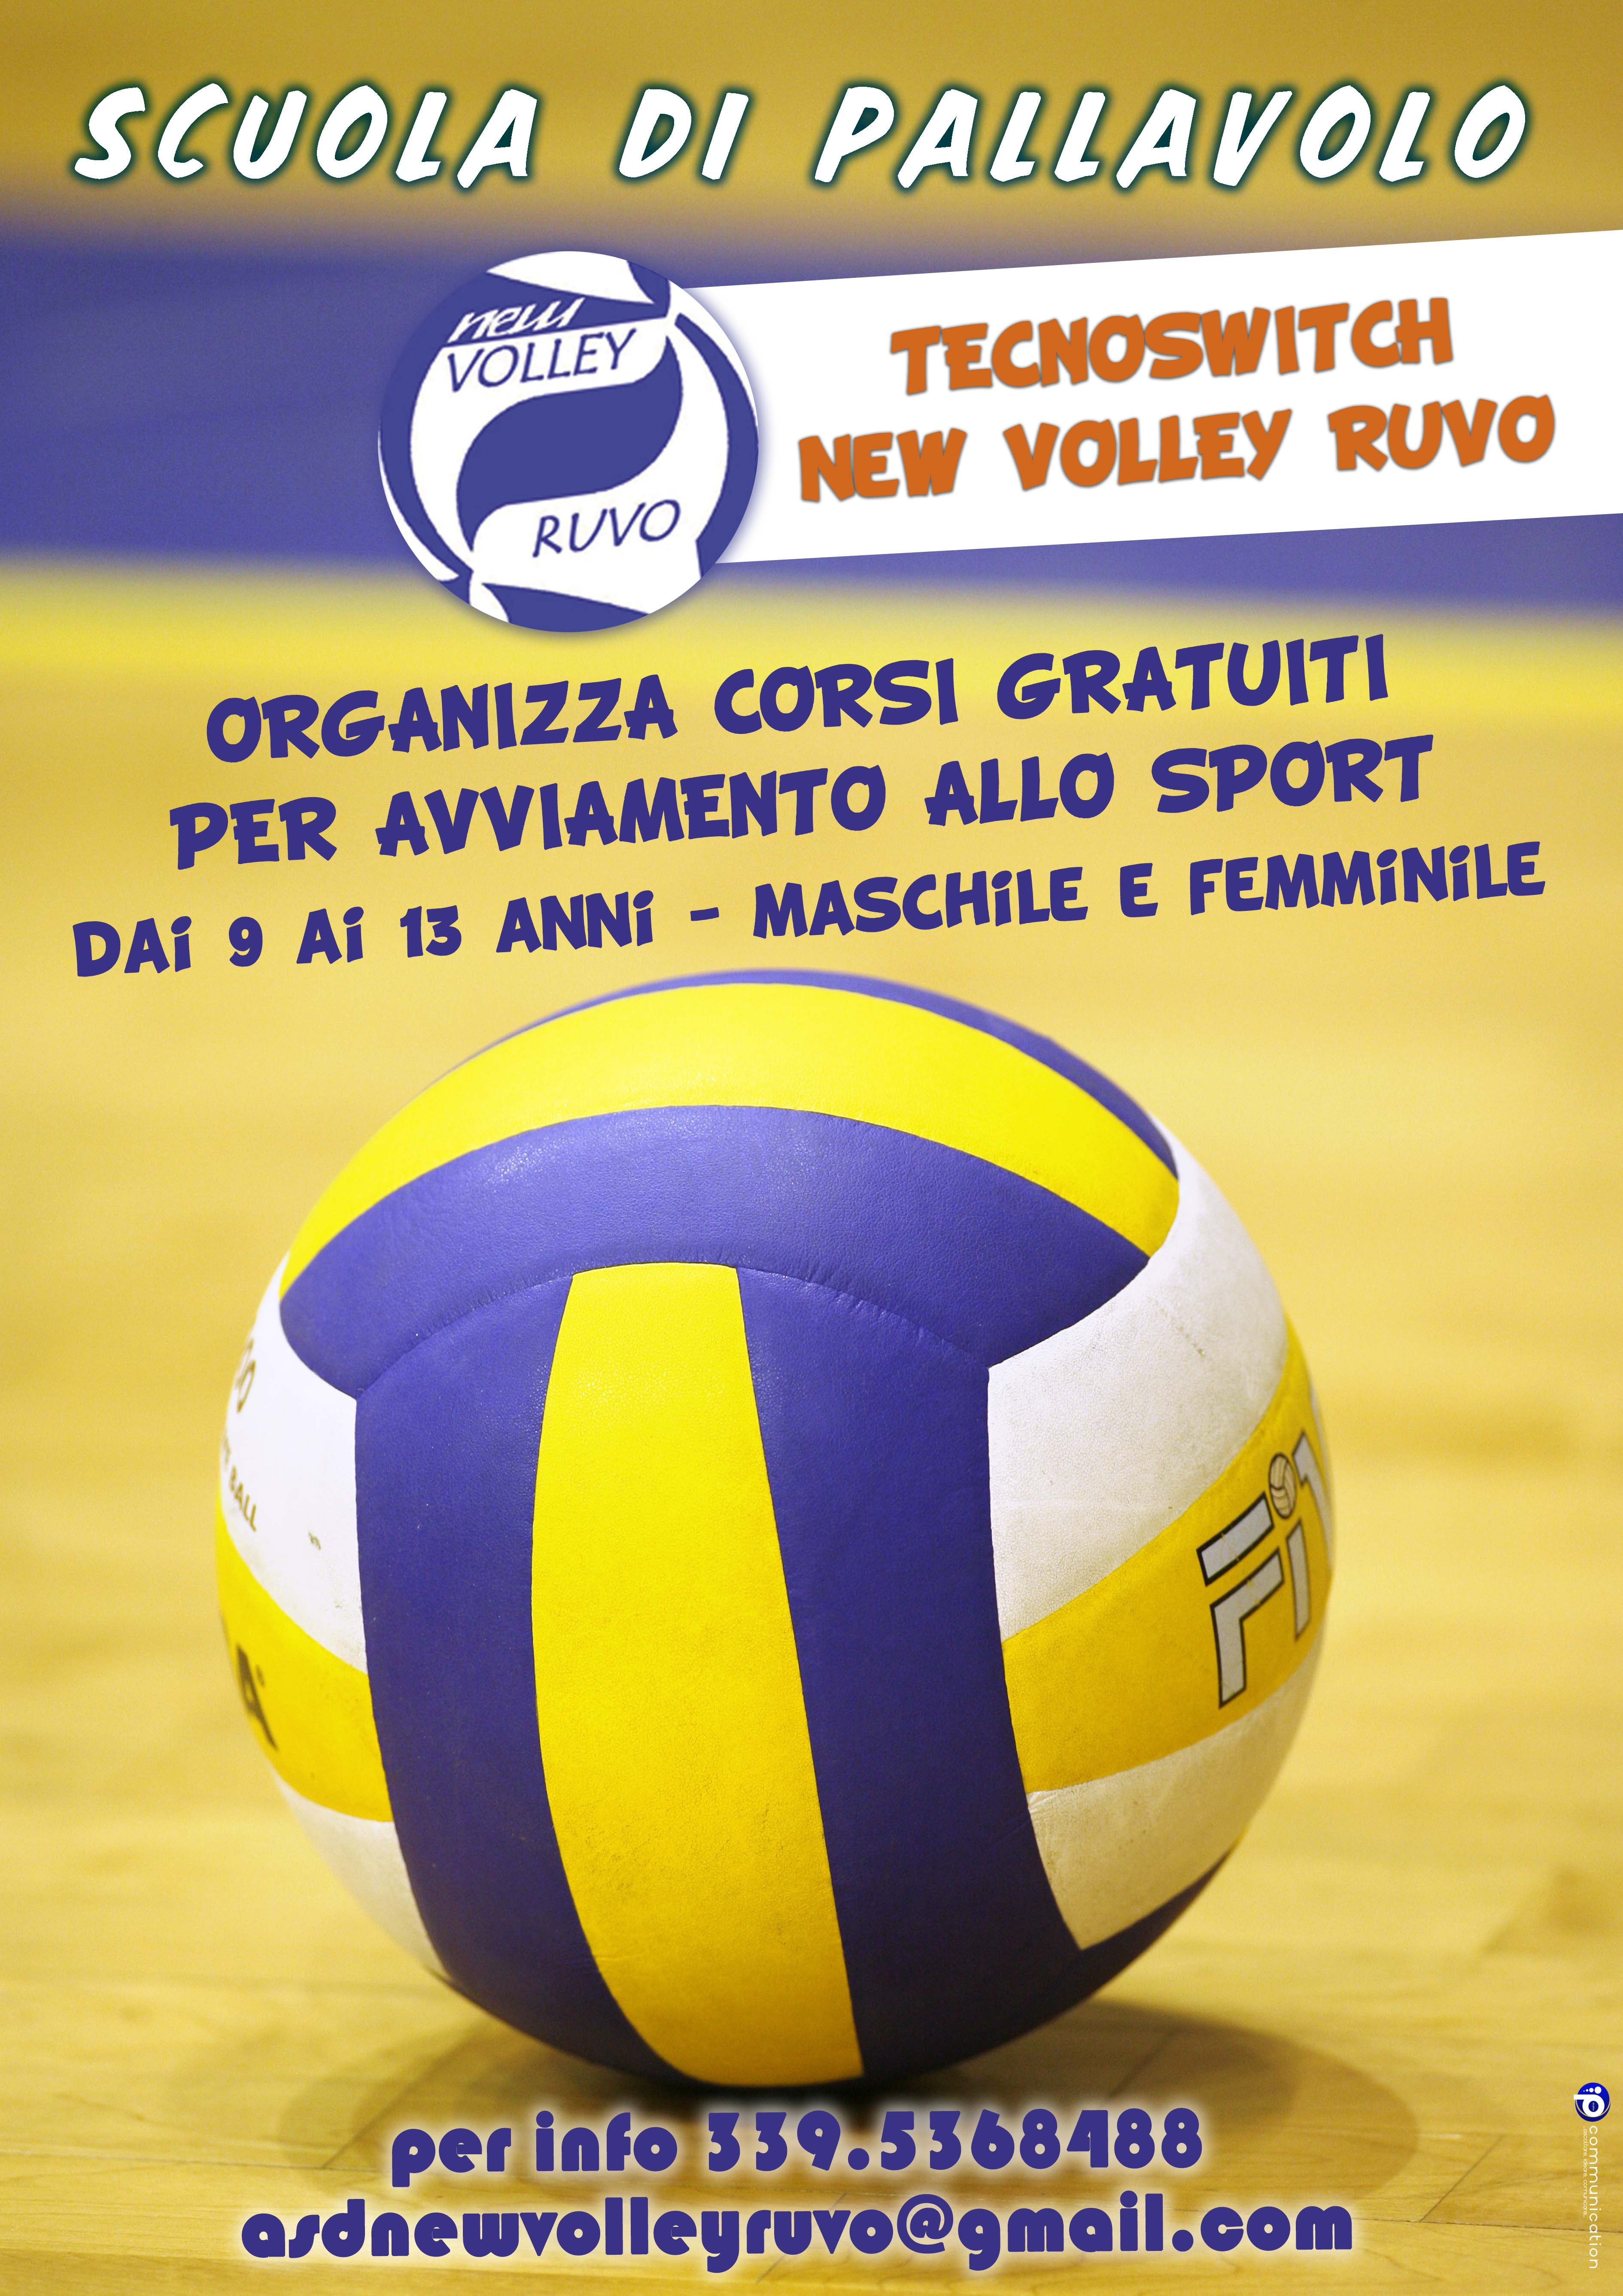 TECNOSWITCH NEW VOLLEY RUVO